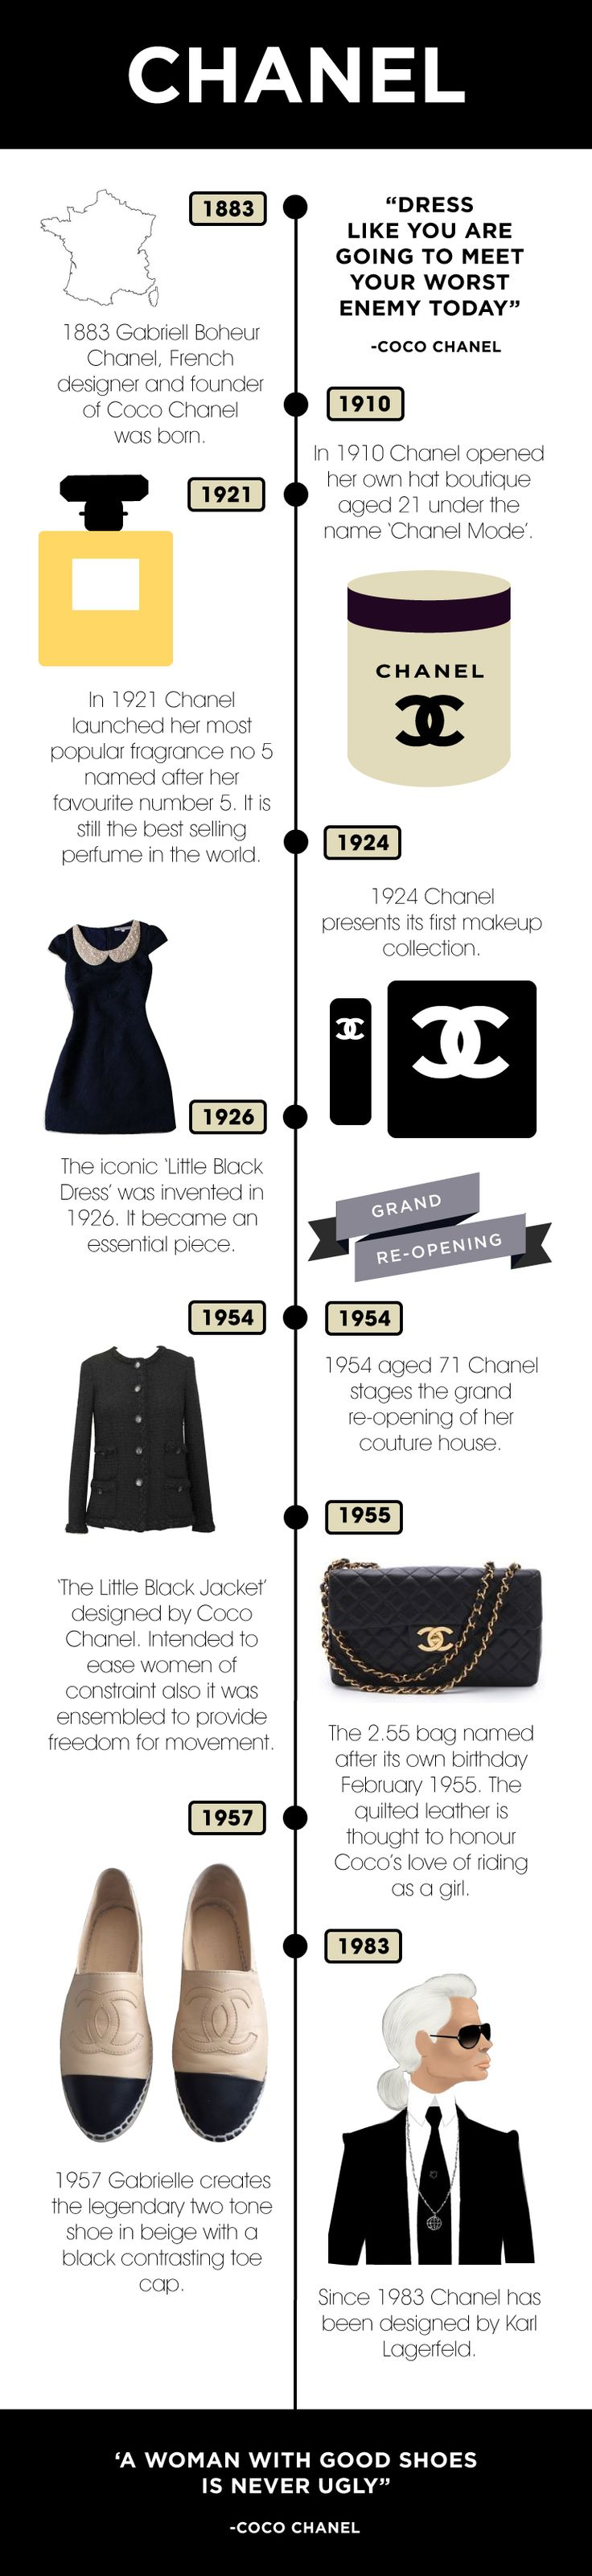 My infographic displays the major events that have taken place throughout the history of Chanel.